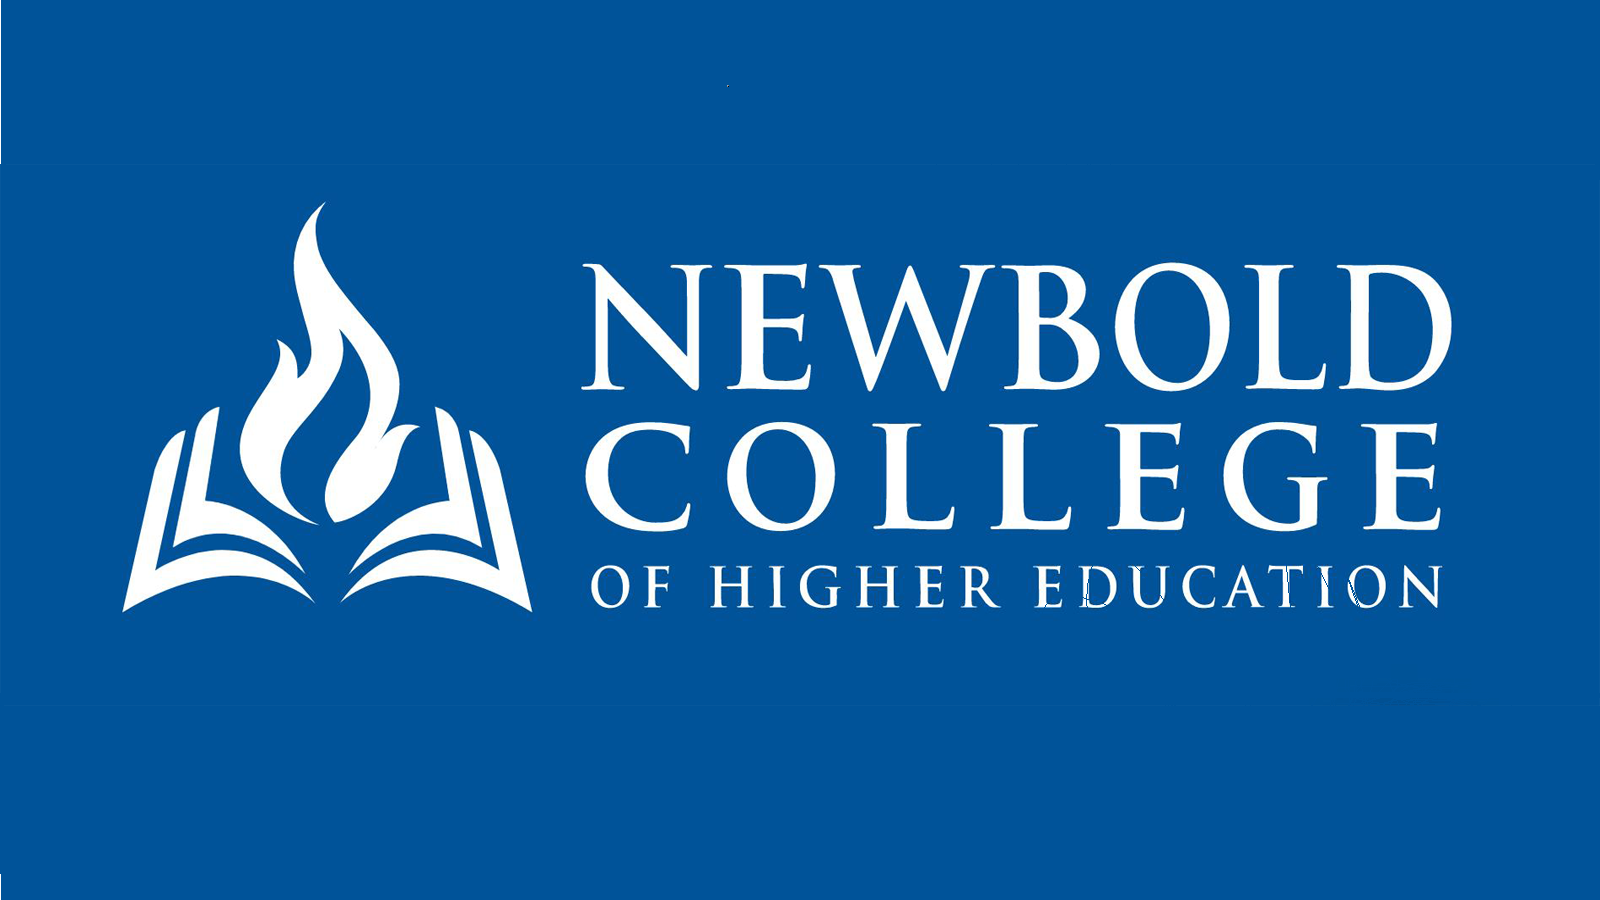 Newbold College of Higher Education logo